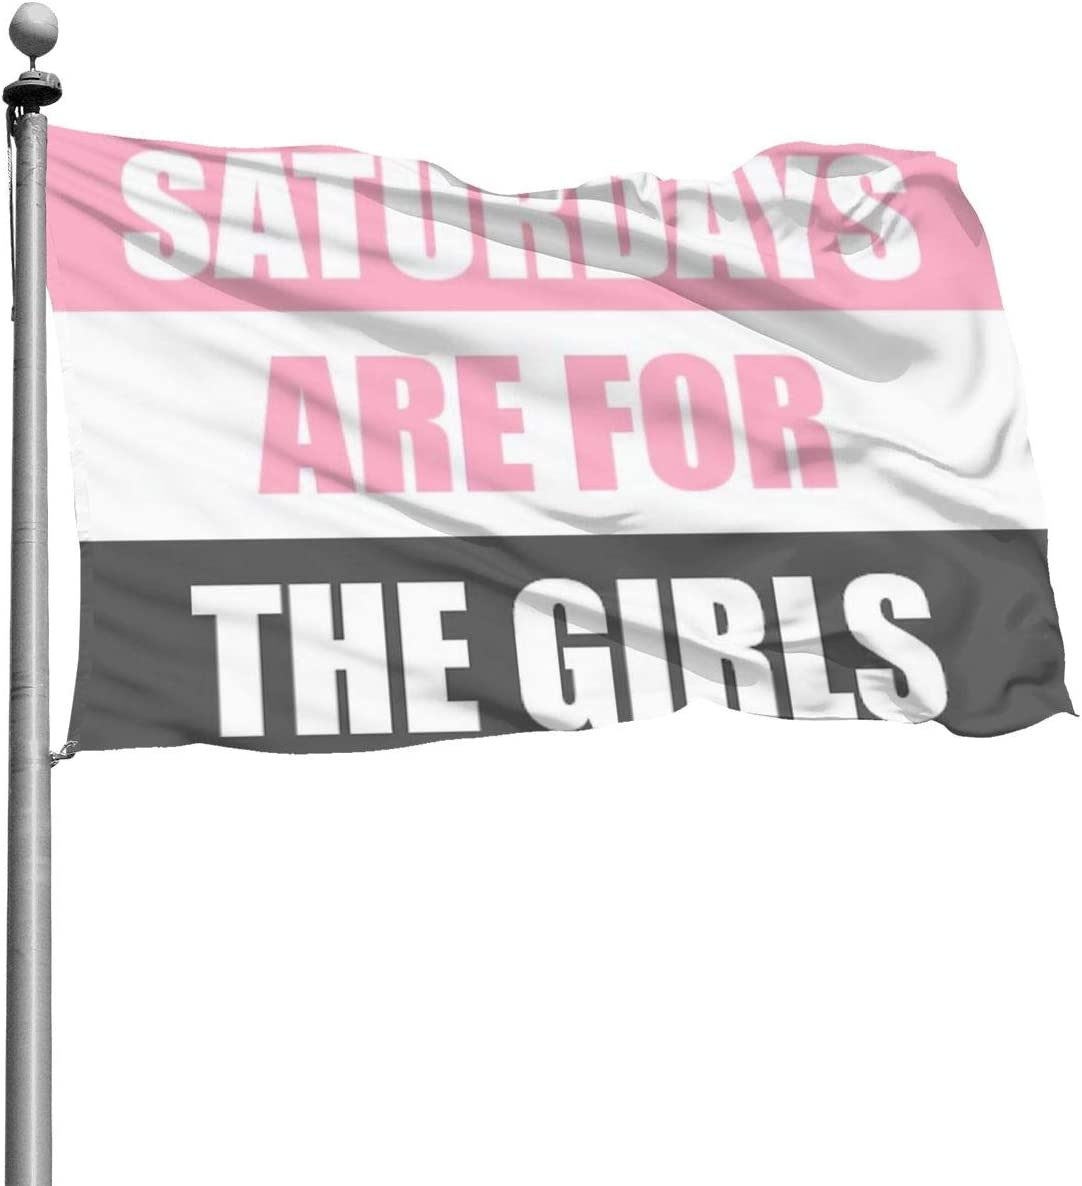 Saturdays are for The Girls Flag, 4x6 in, Polyester Cloth Fading Banner, Perfect for Garden Decoration College Party Fraternities Parties Dorm Room Decor